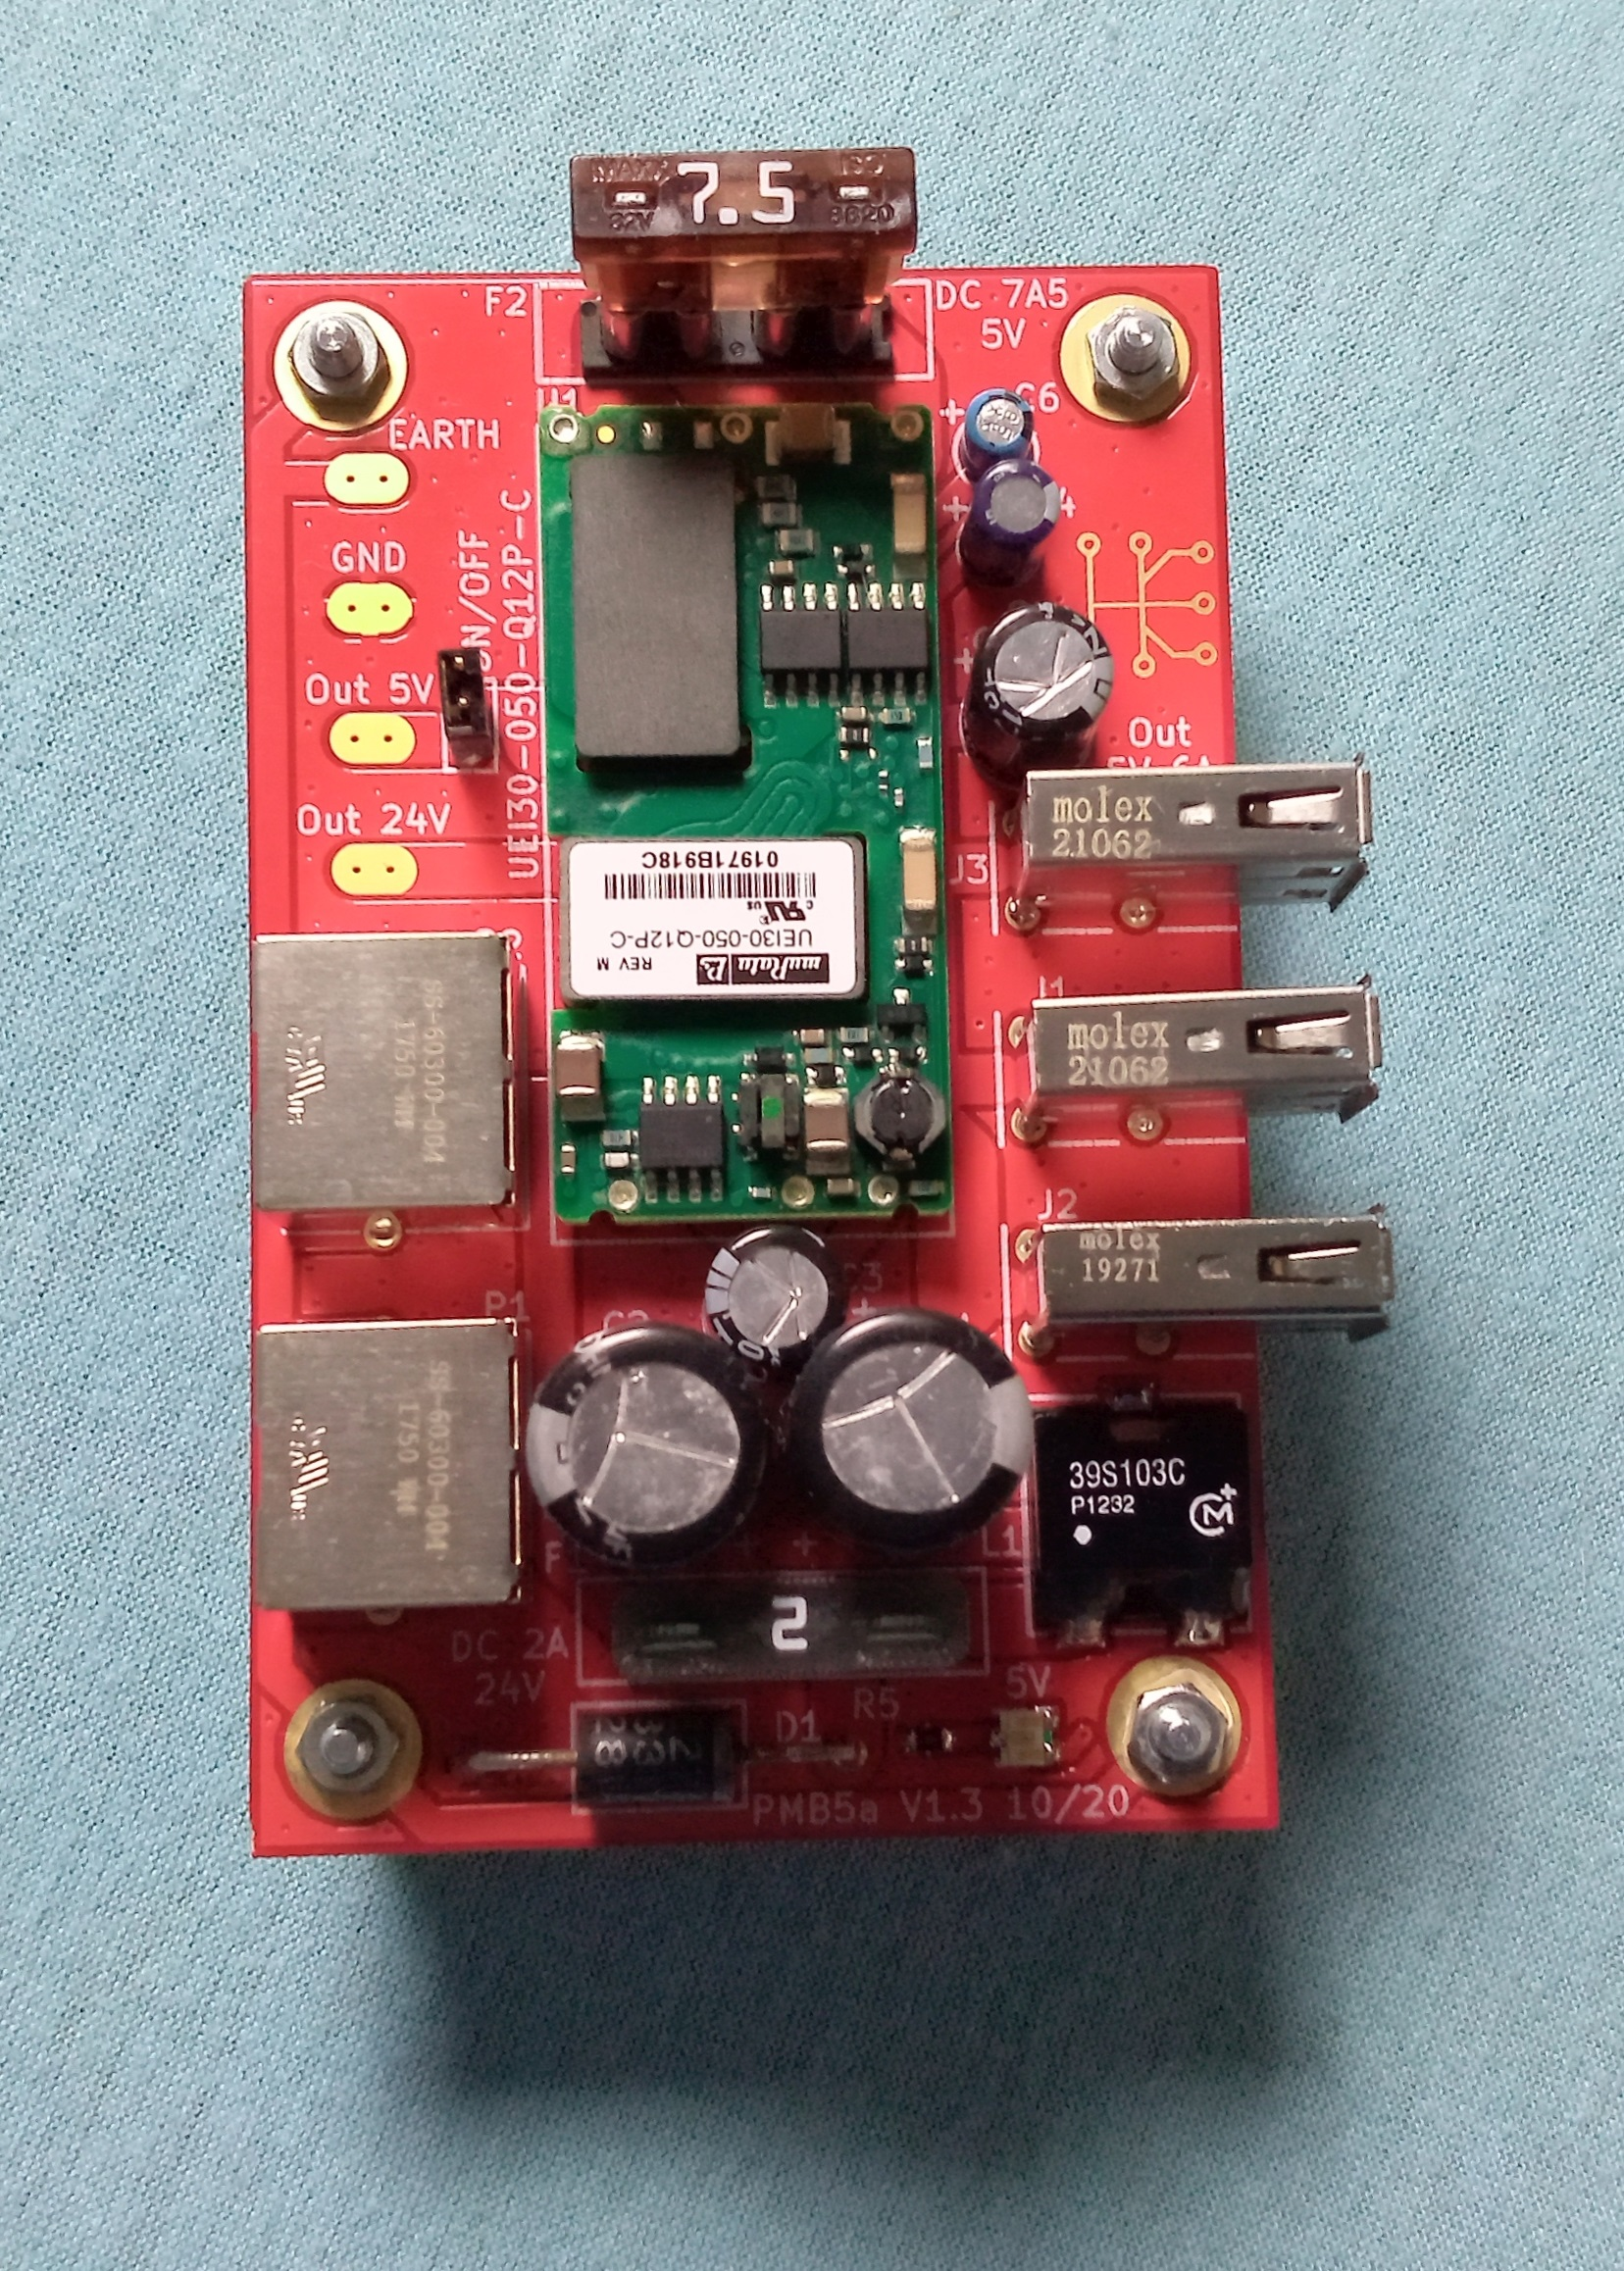 3x USB with total 5V 6A 30W output on the Fixmebus